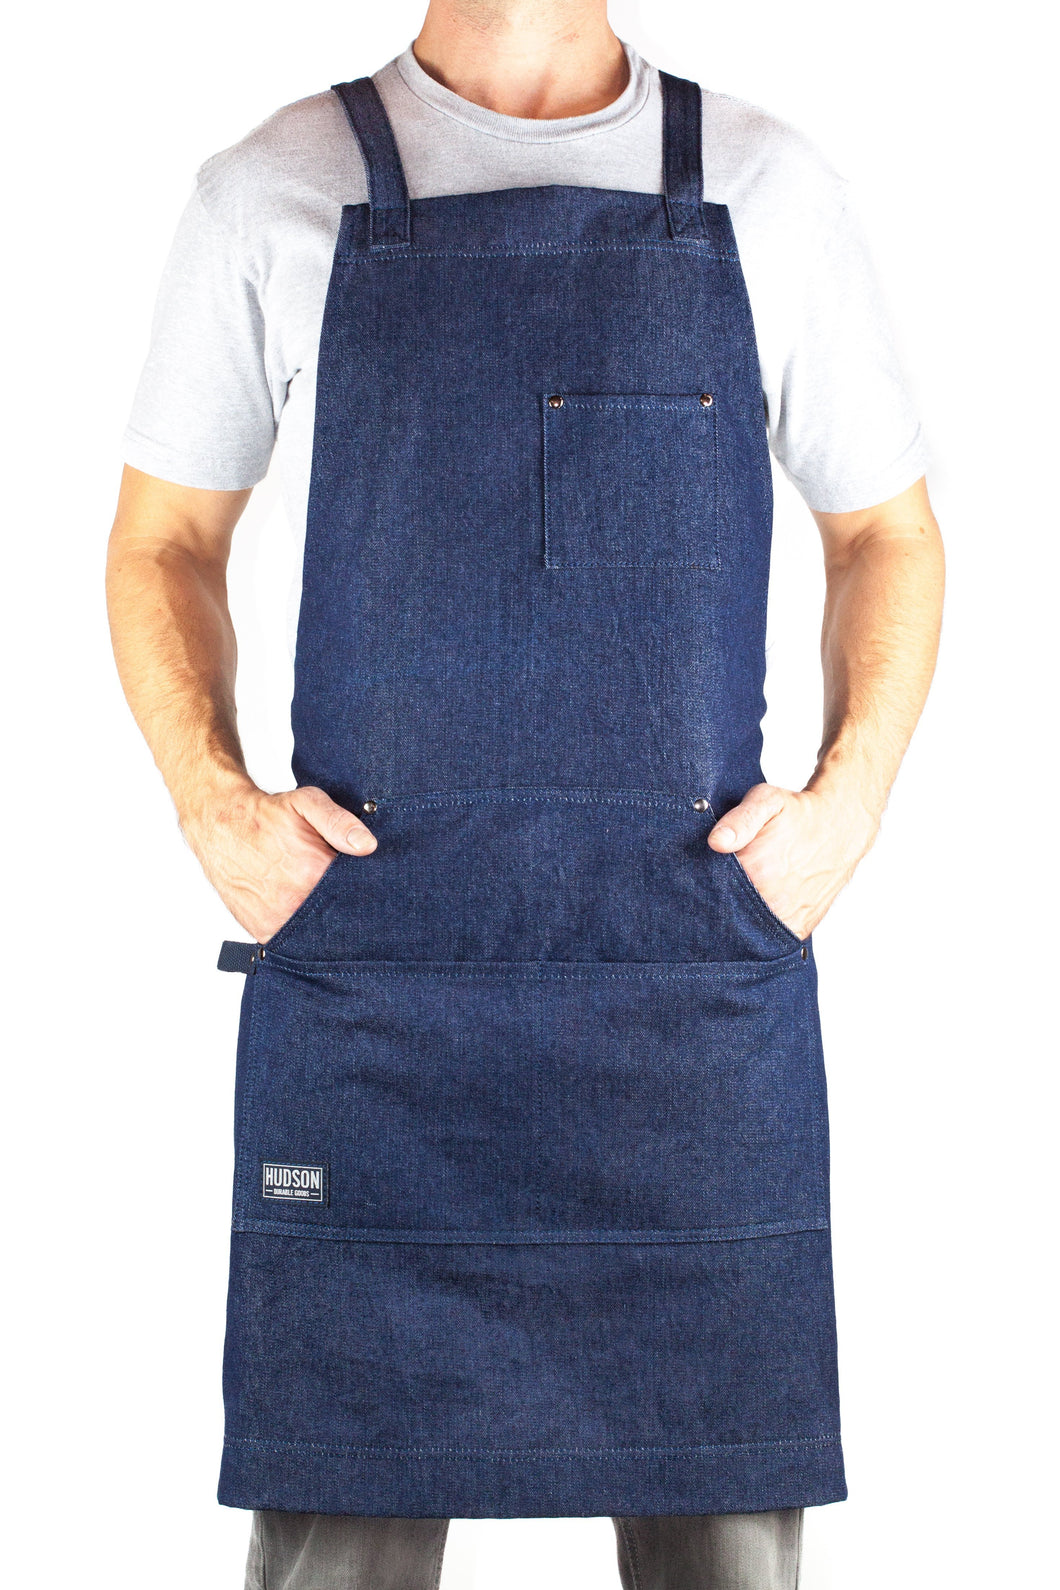 Hudson Durable Goods HDG805D - Professional Grade Denim Apron